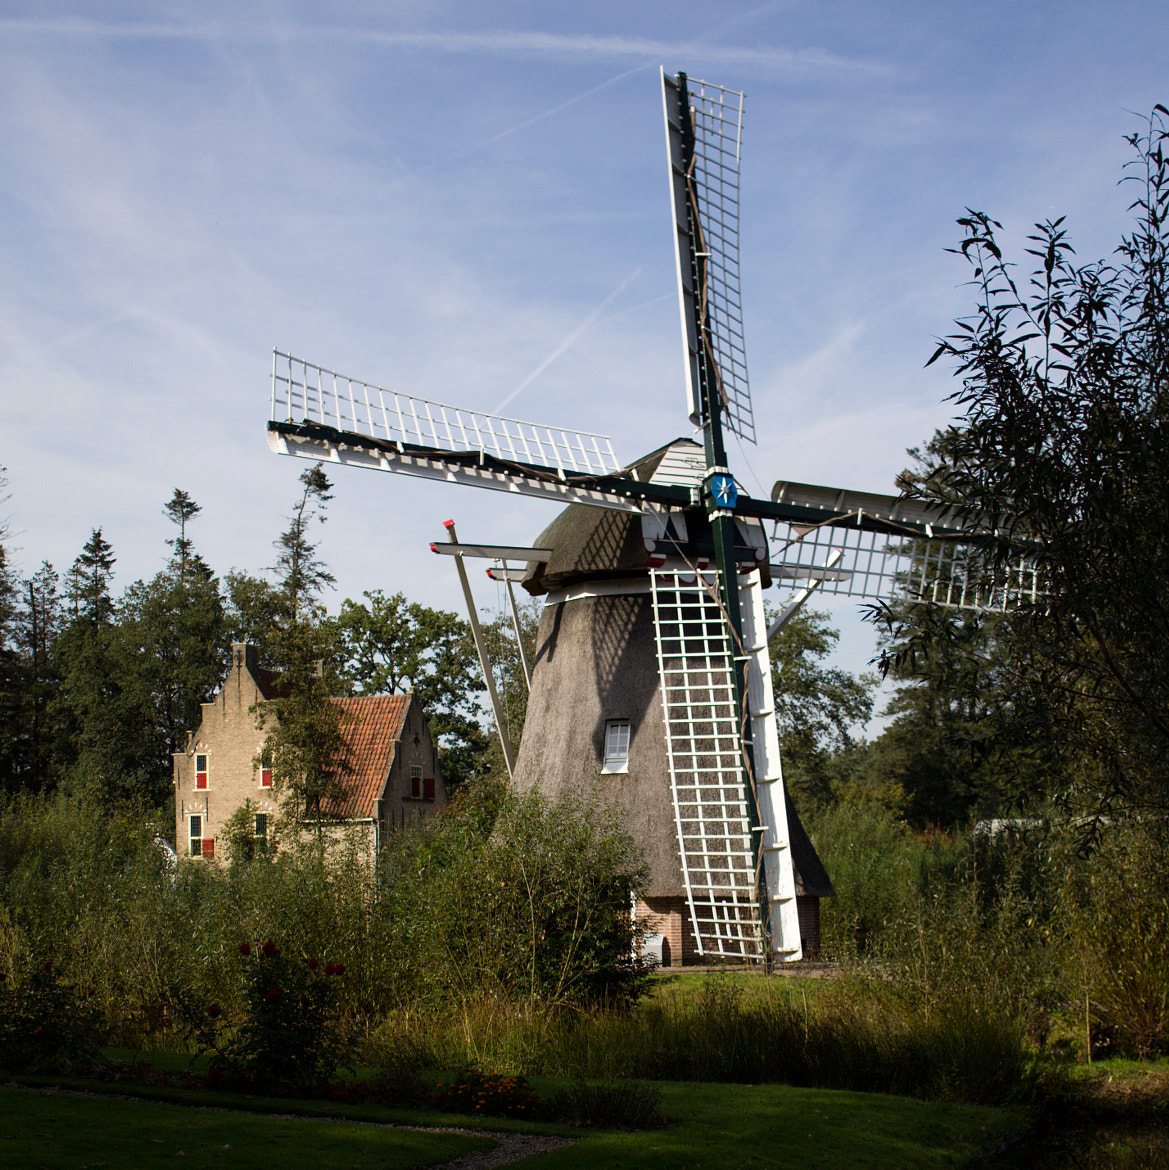 Photograph Windmill in an open-air museum by Marco B on 500px